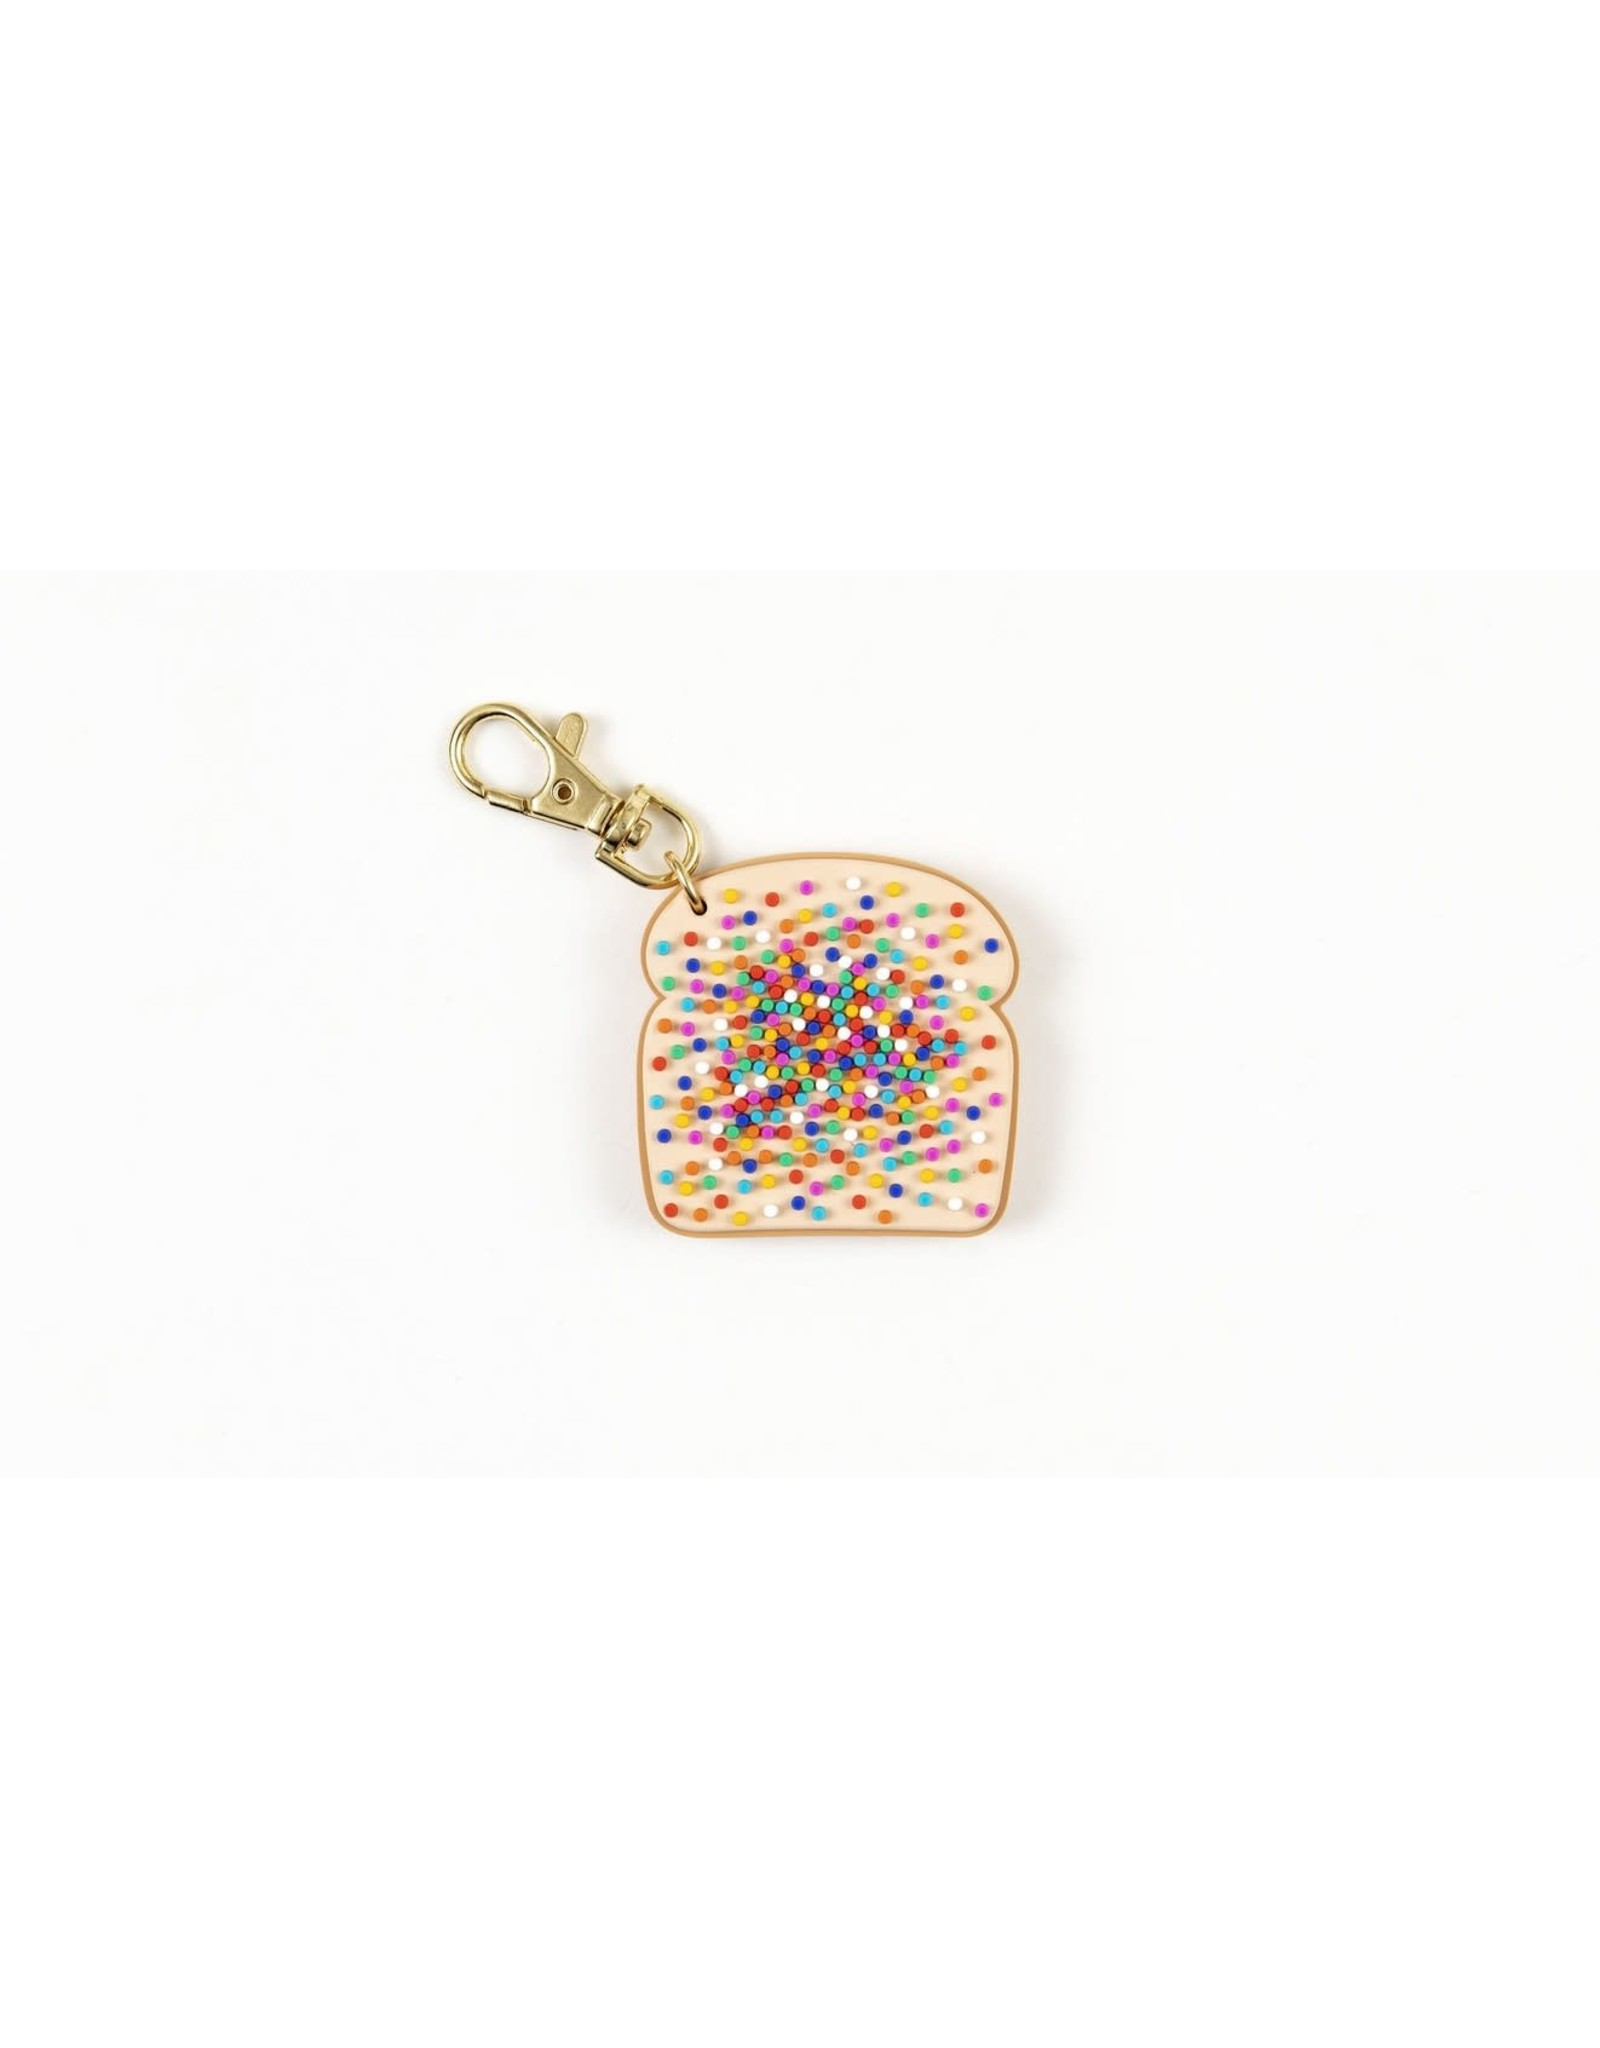 Can't Clutch This Sprinkled Toast Keychain